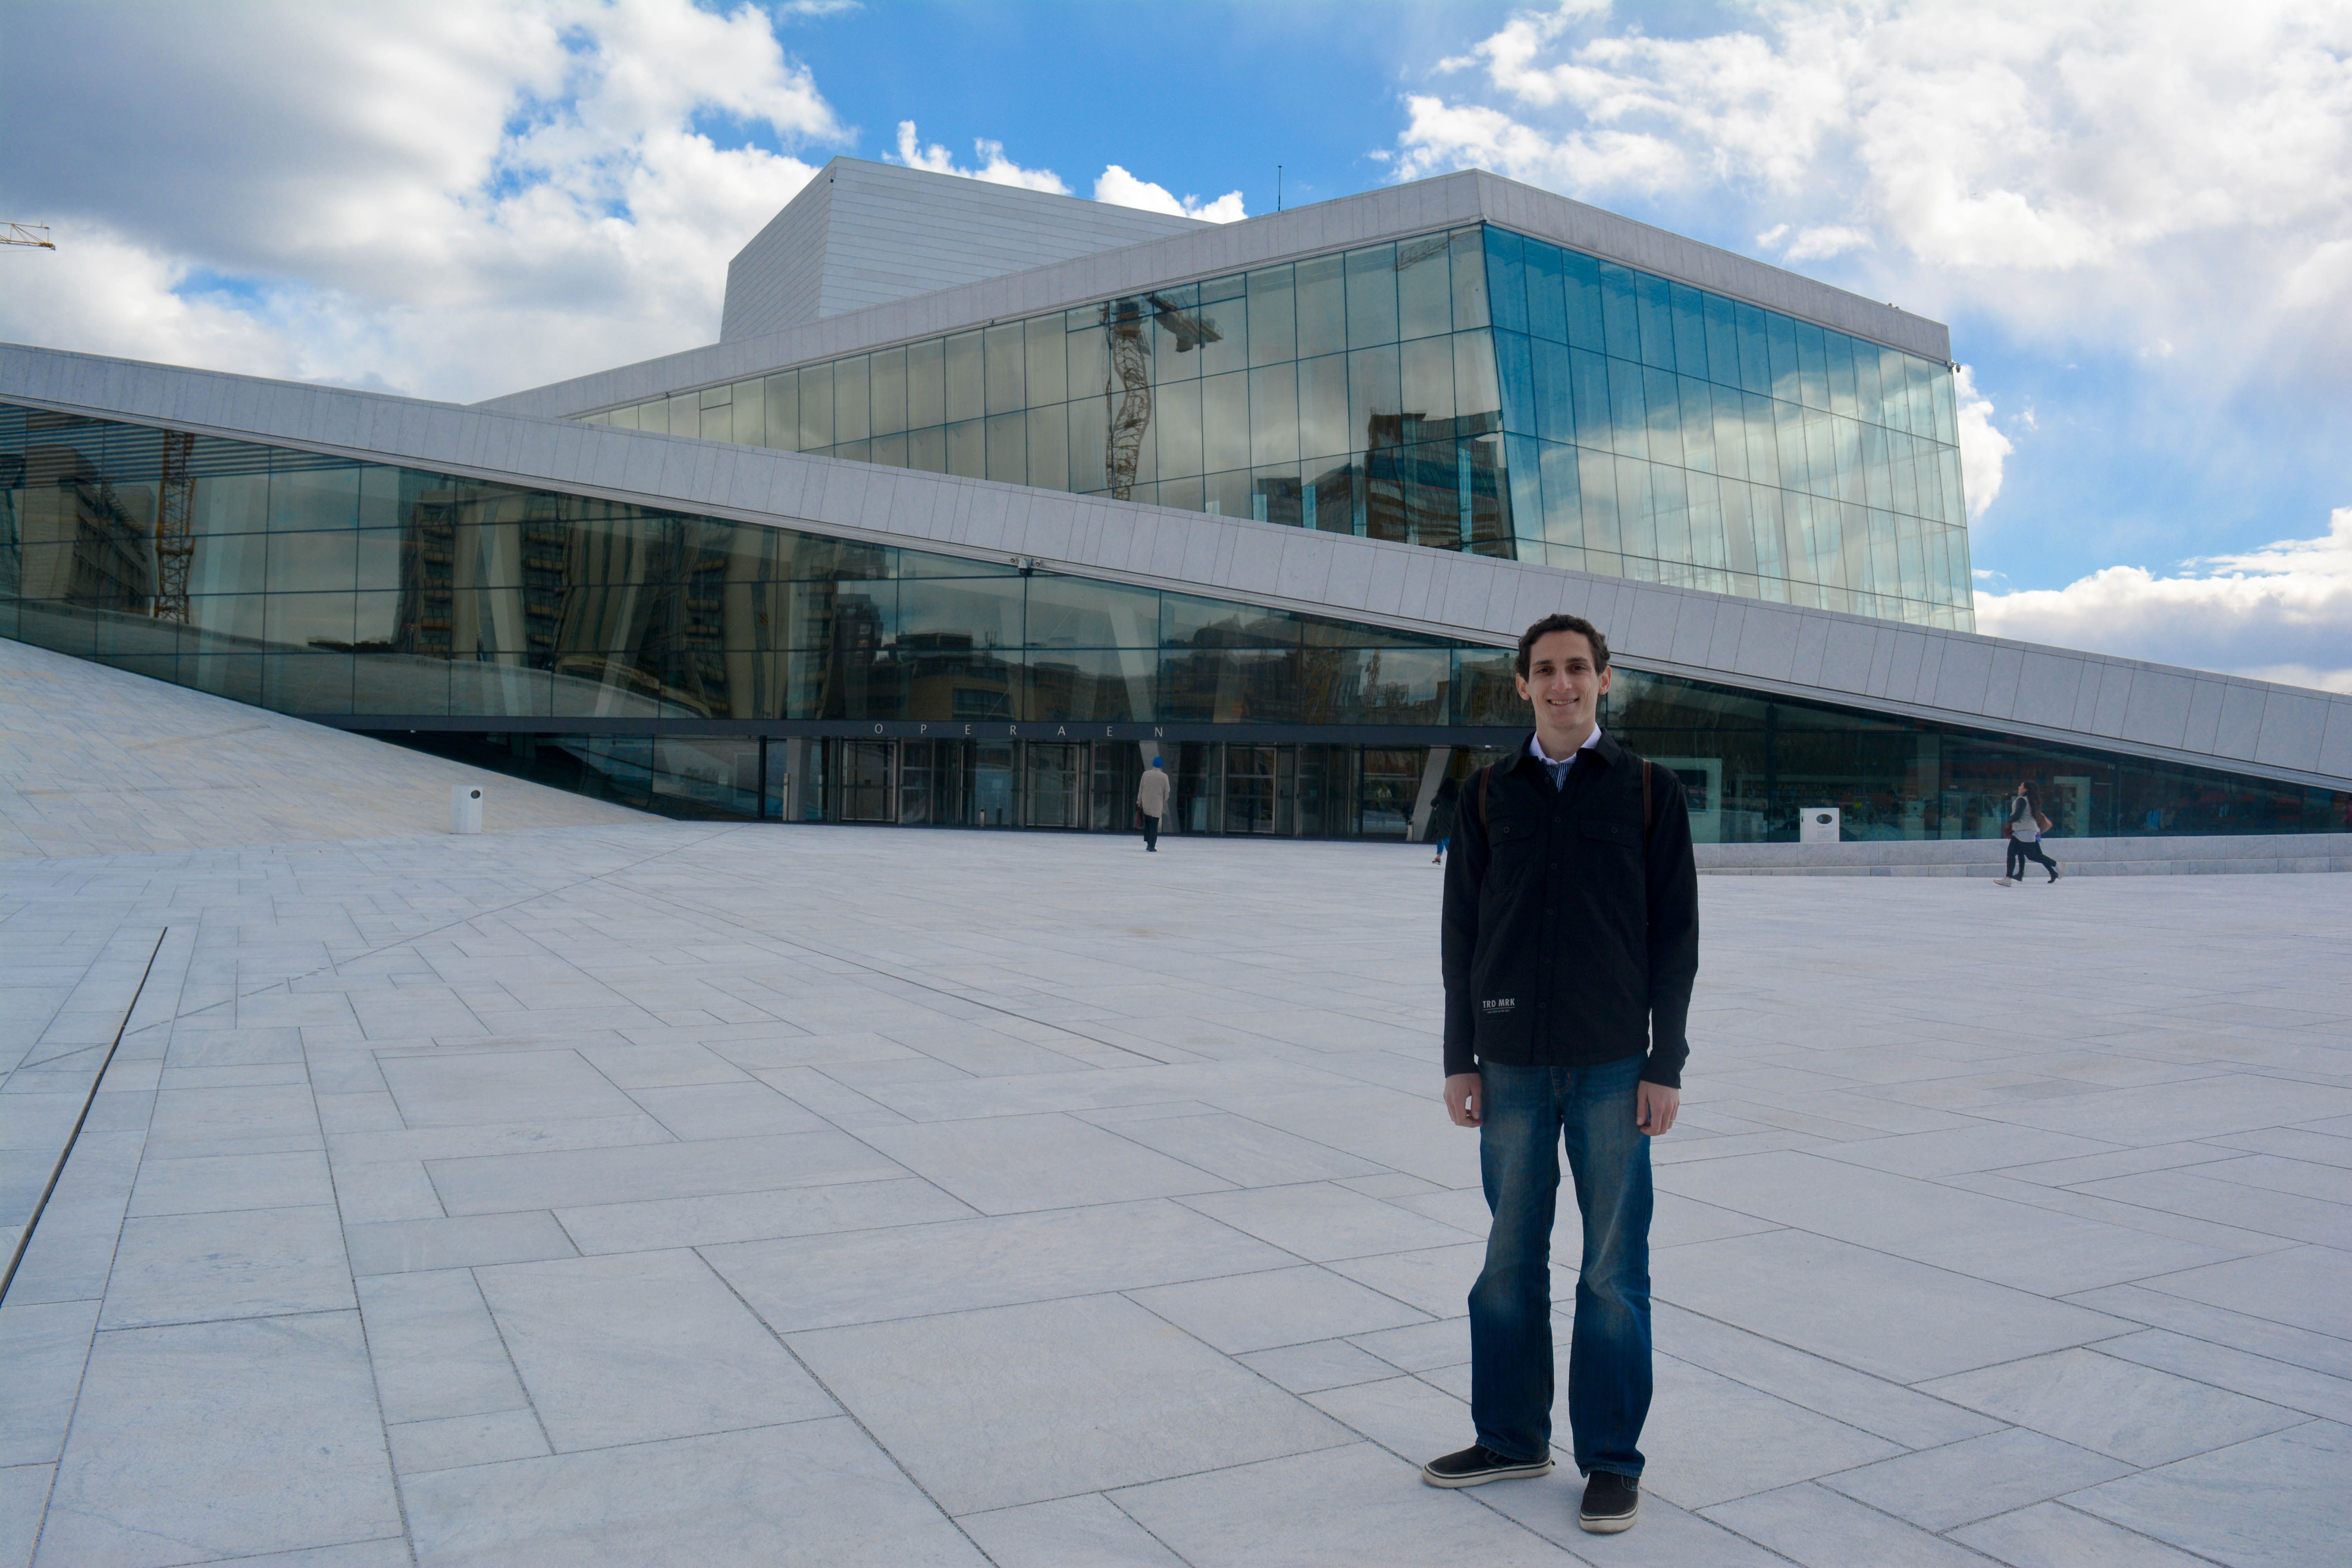 The Oslo Opera House Is The Home Of The Norwegian National Opera And  Ballet, And